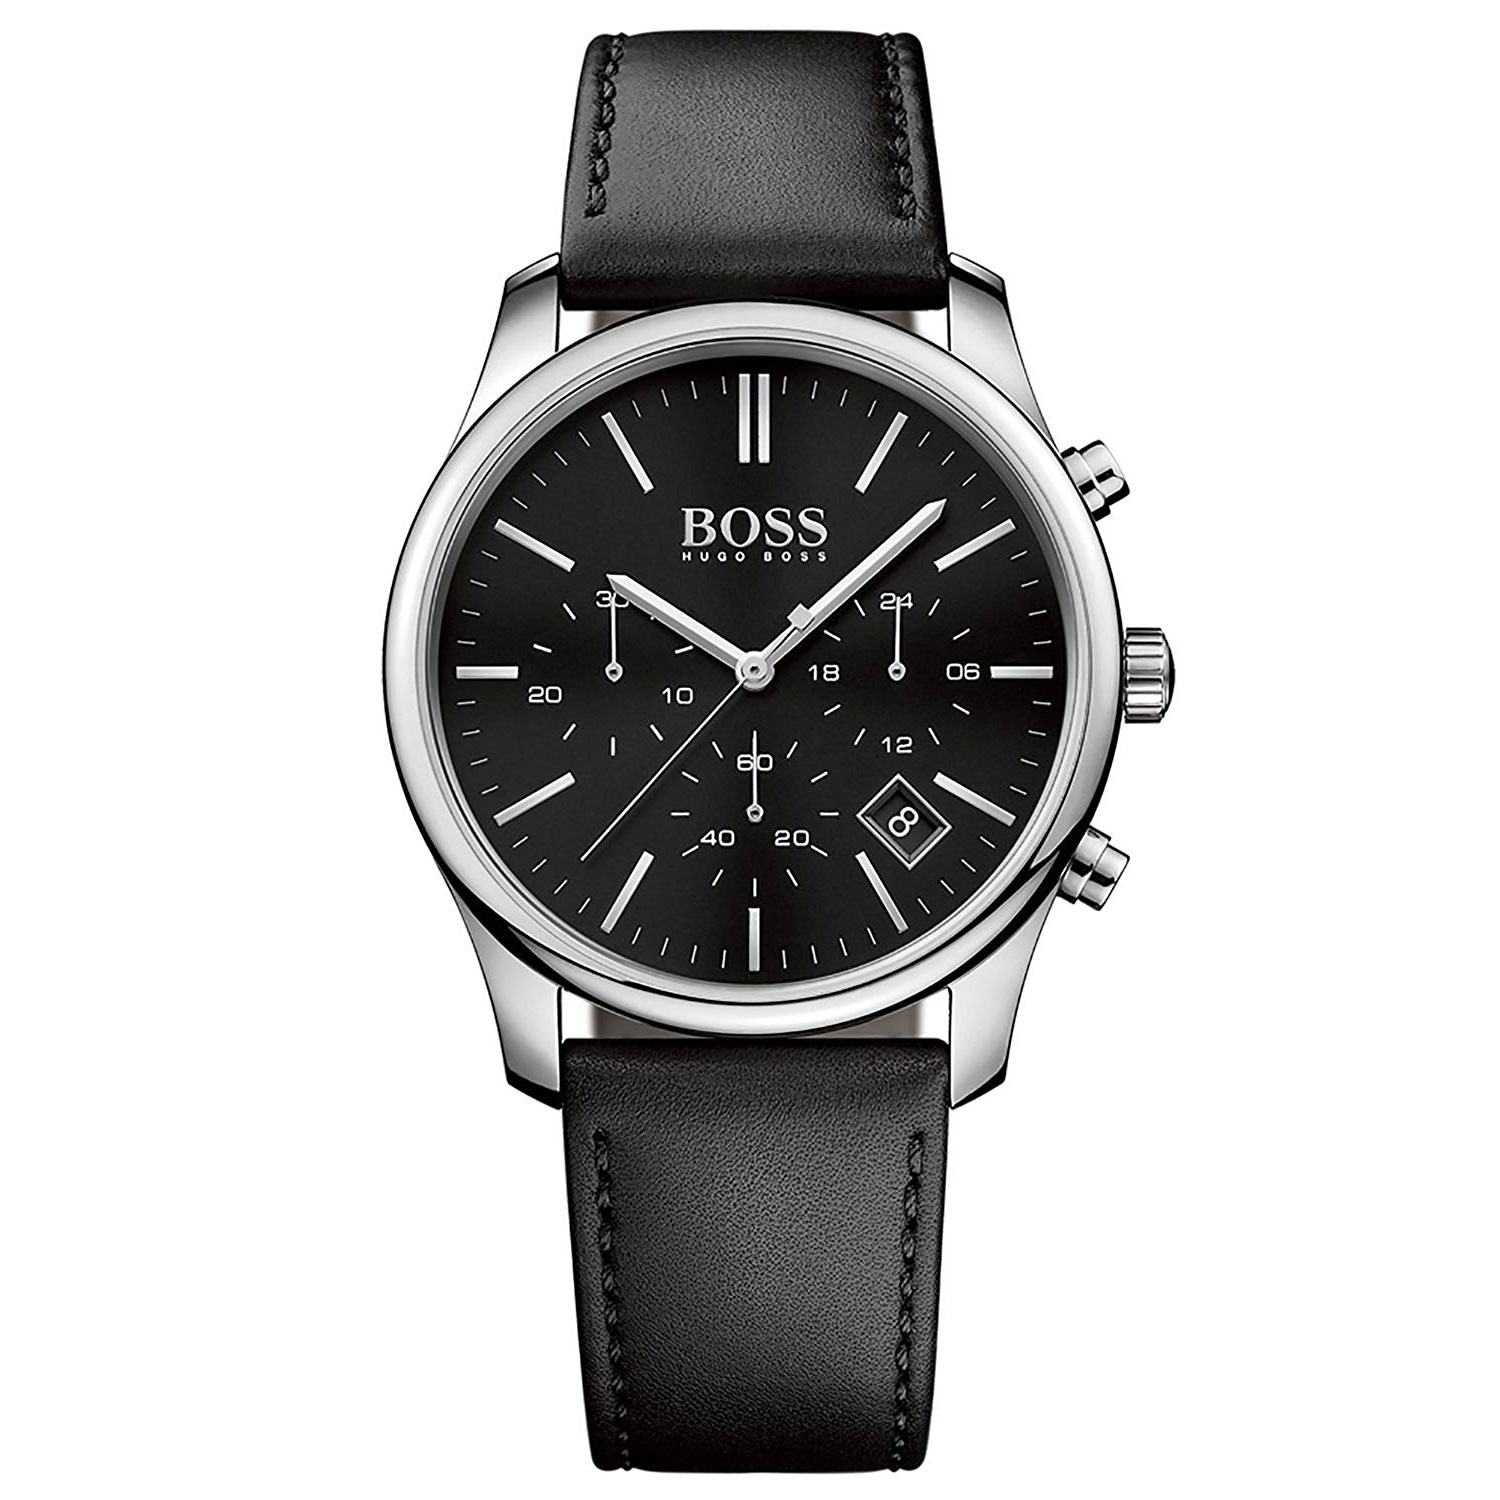 Hugo Boss Watch with stainless steel and black leather